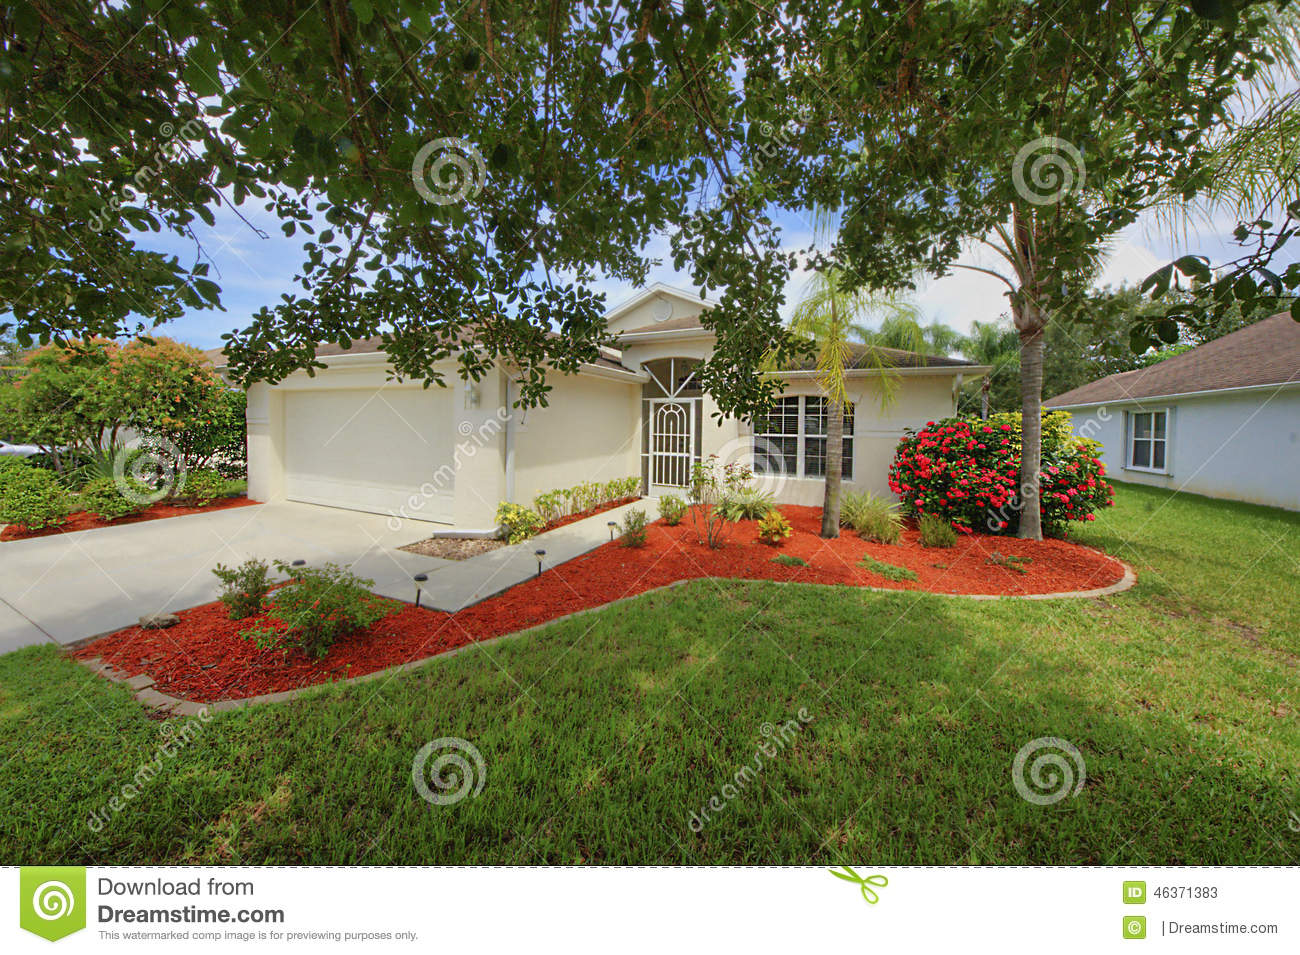 Florida small clean home with fresh new landscaping stock for New landscaping ideas